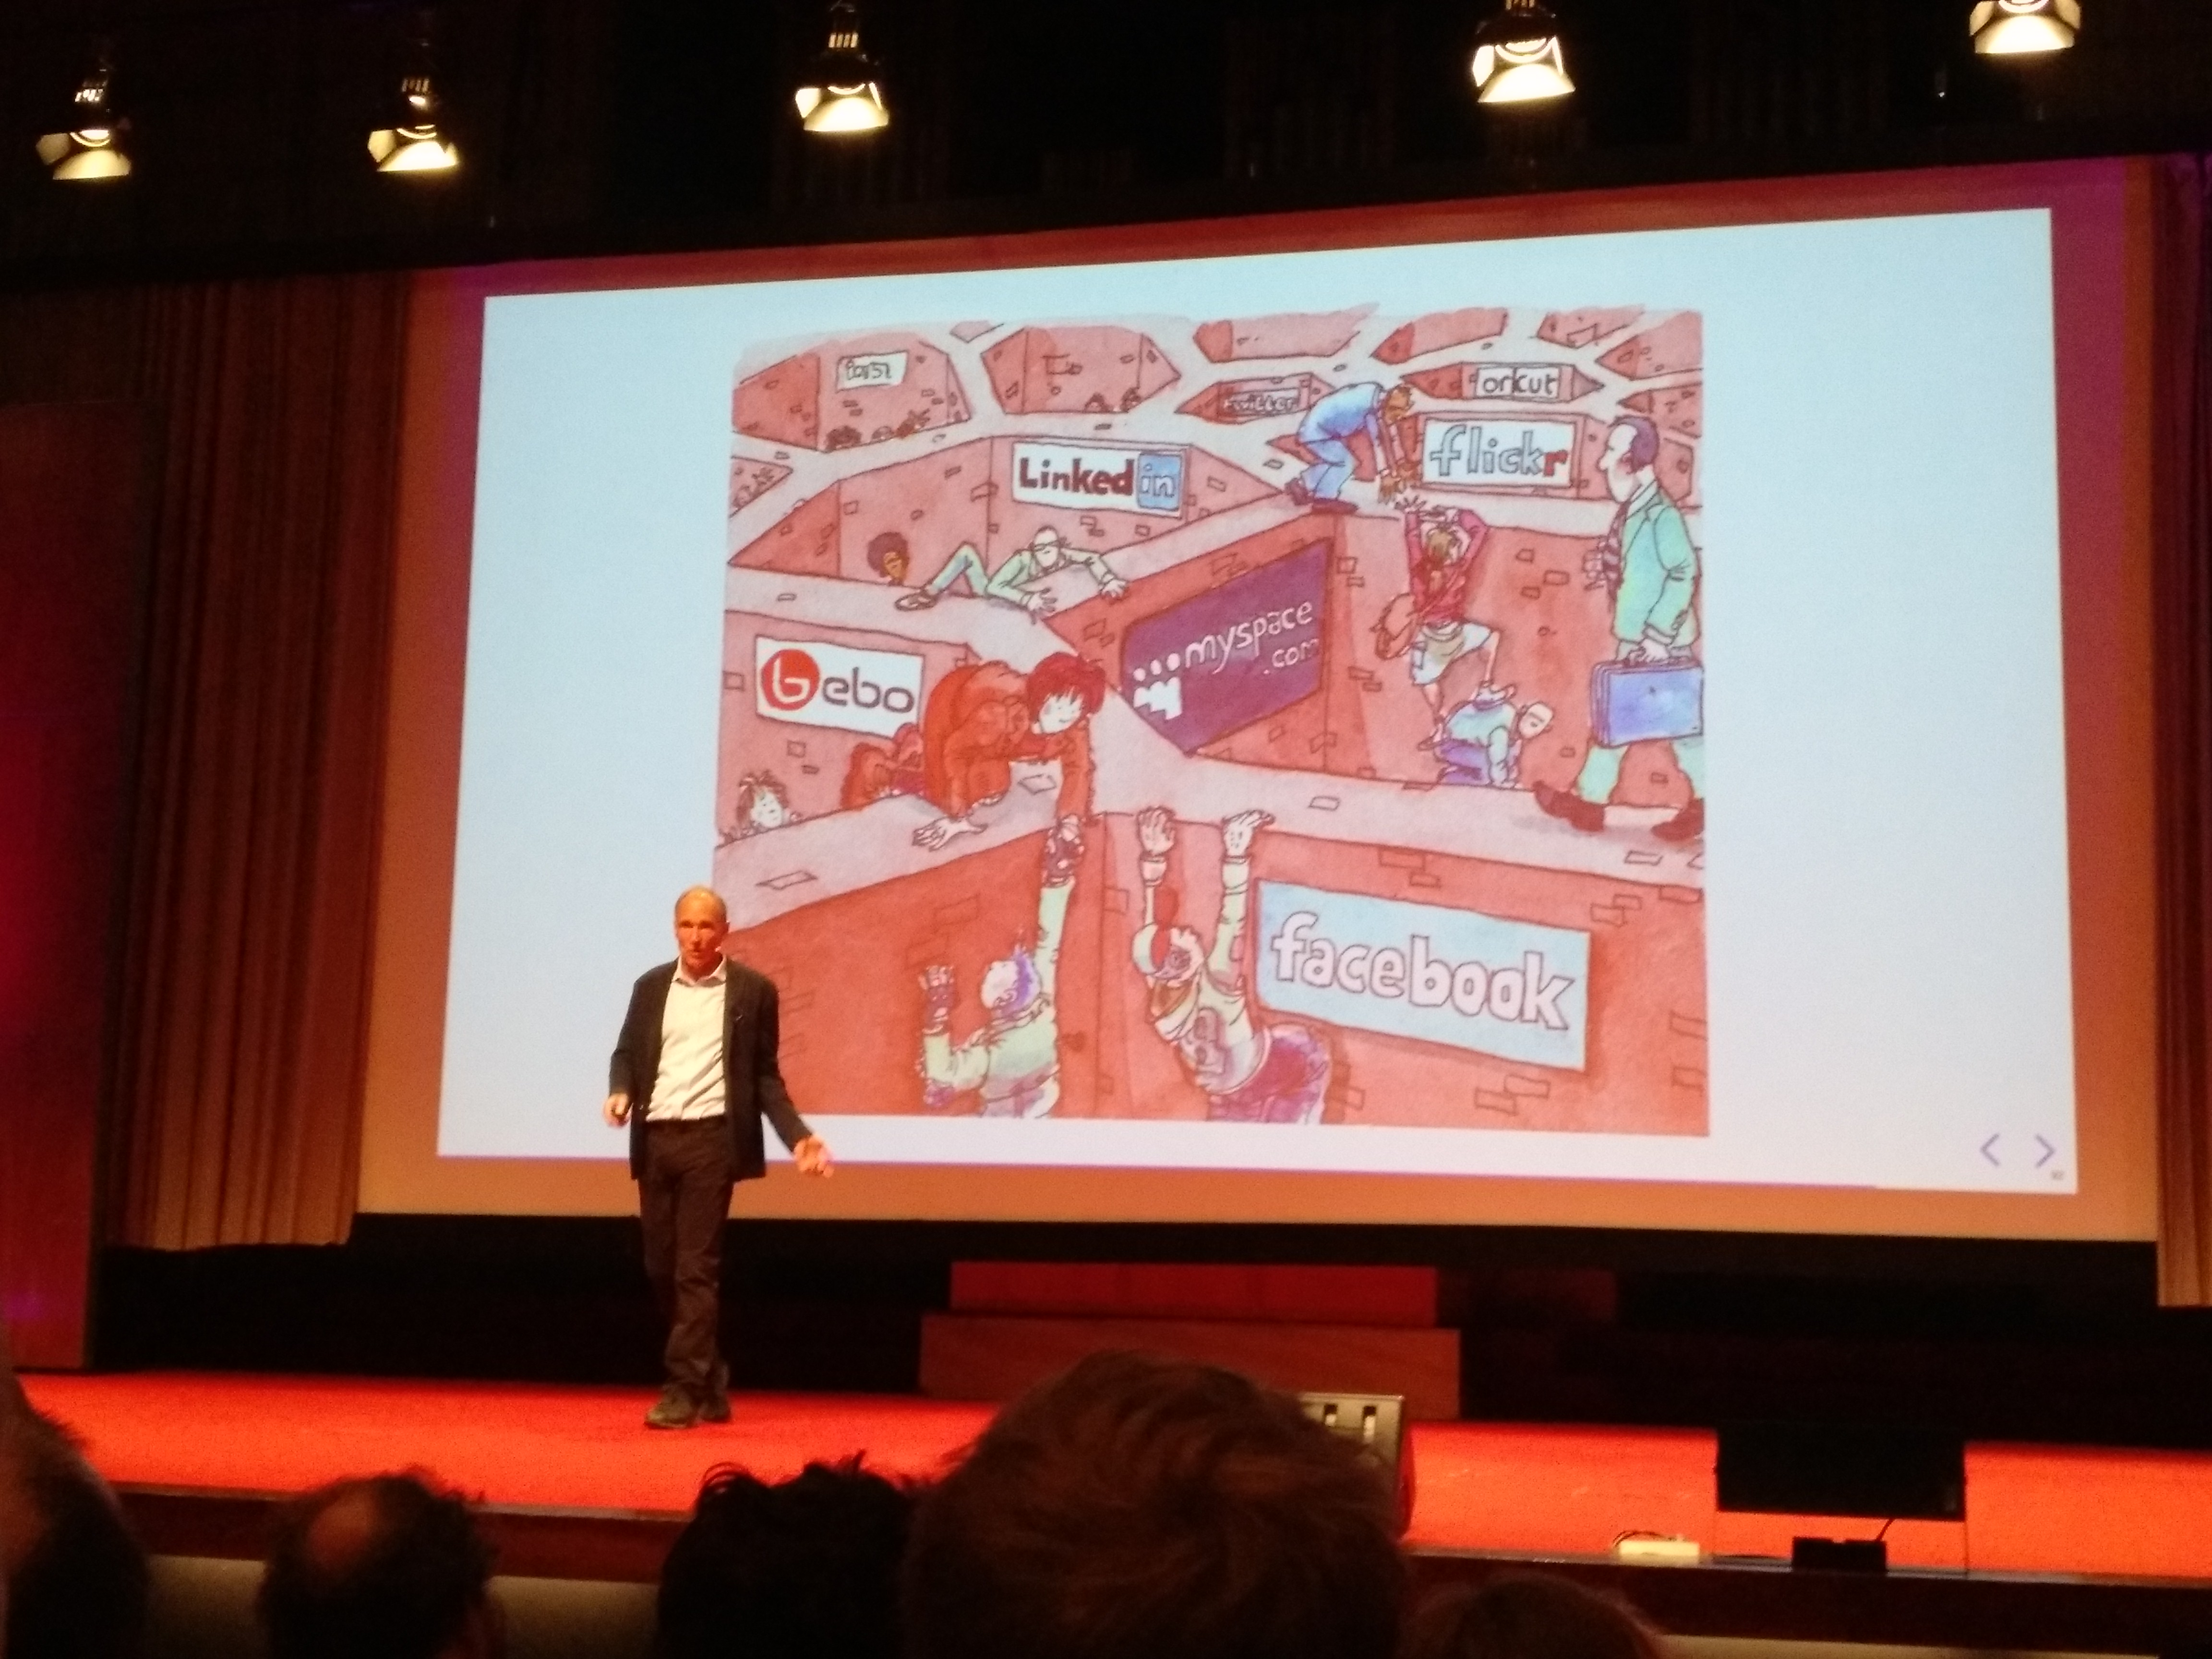 Tim Berners-Lee about the web